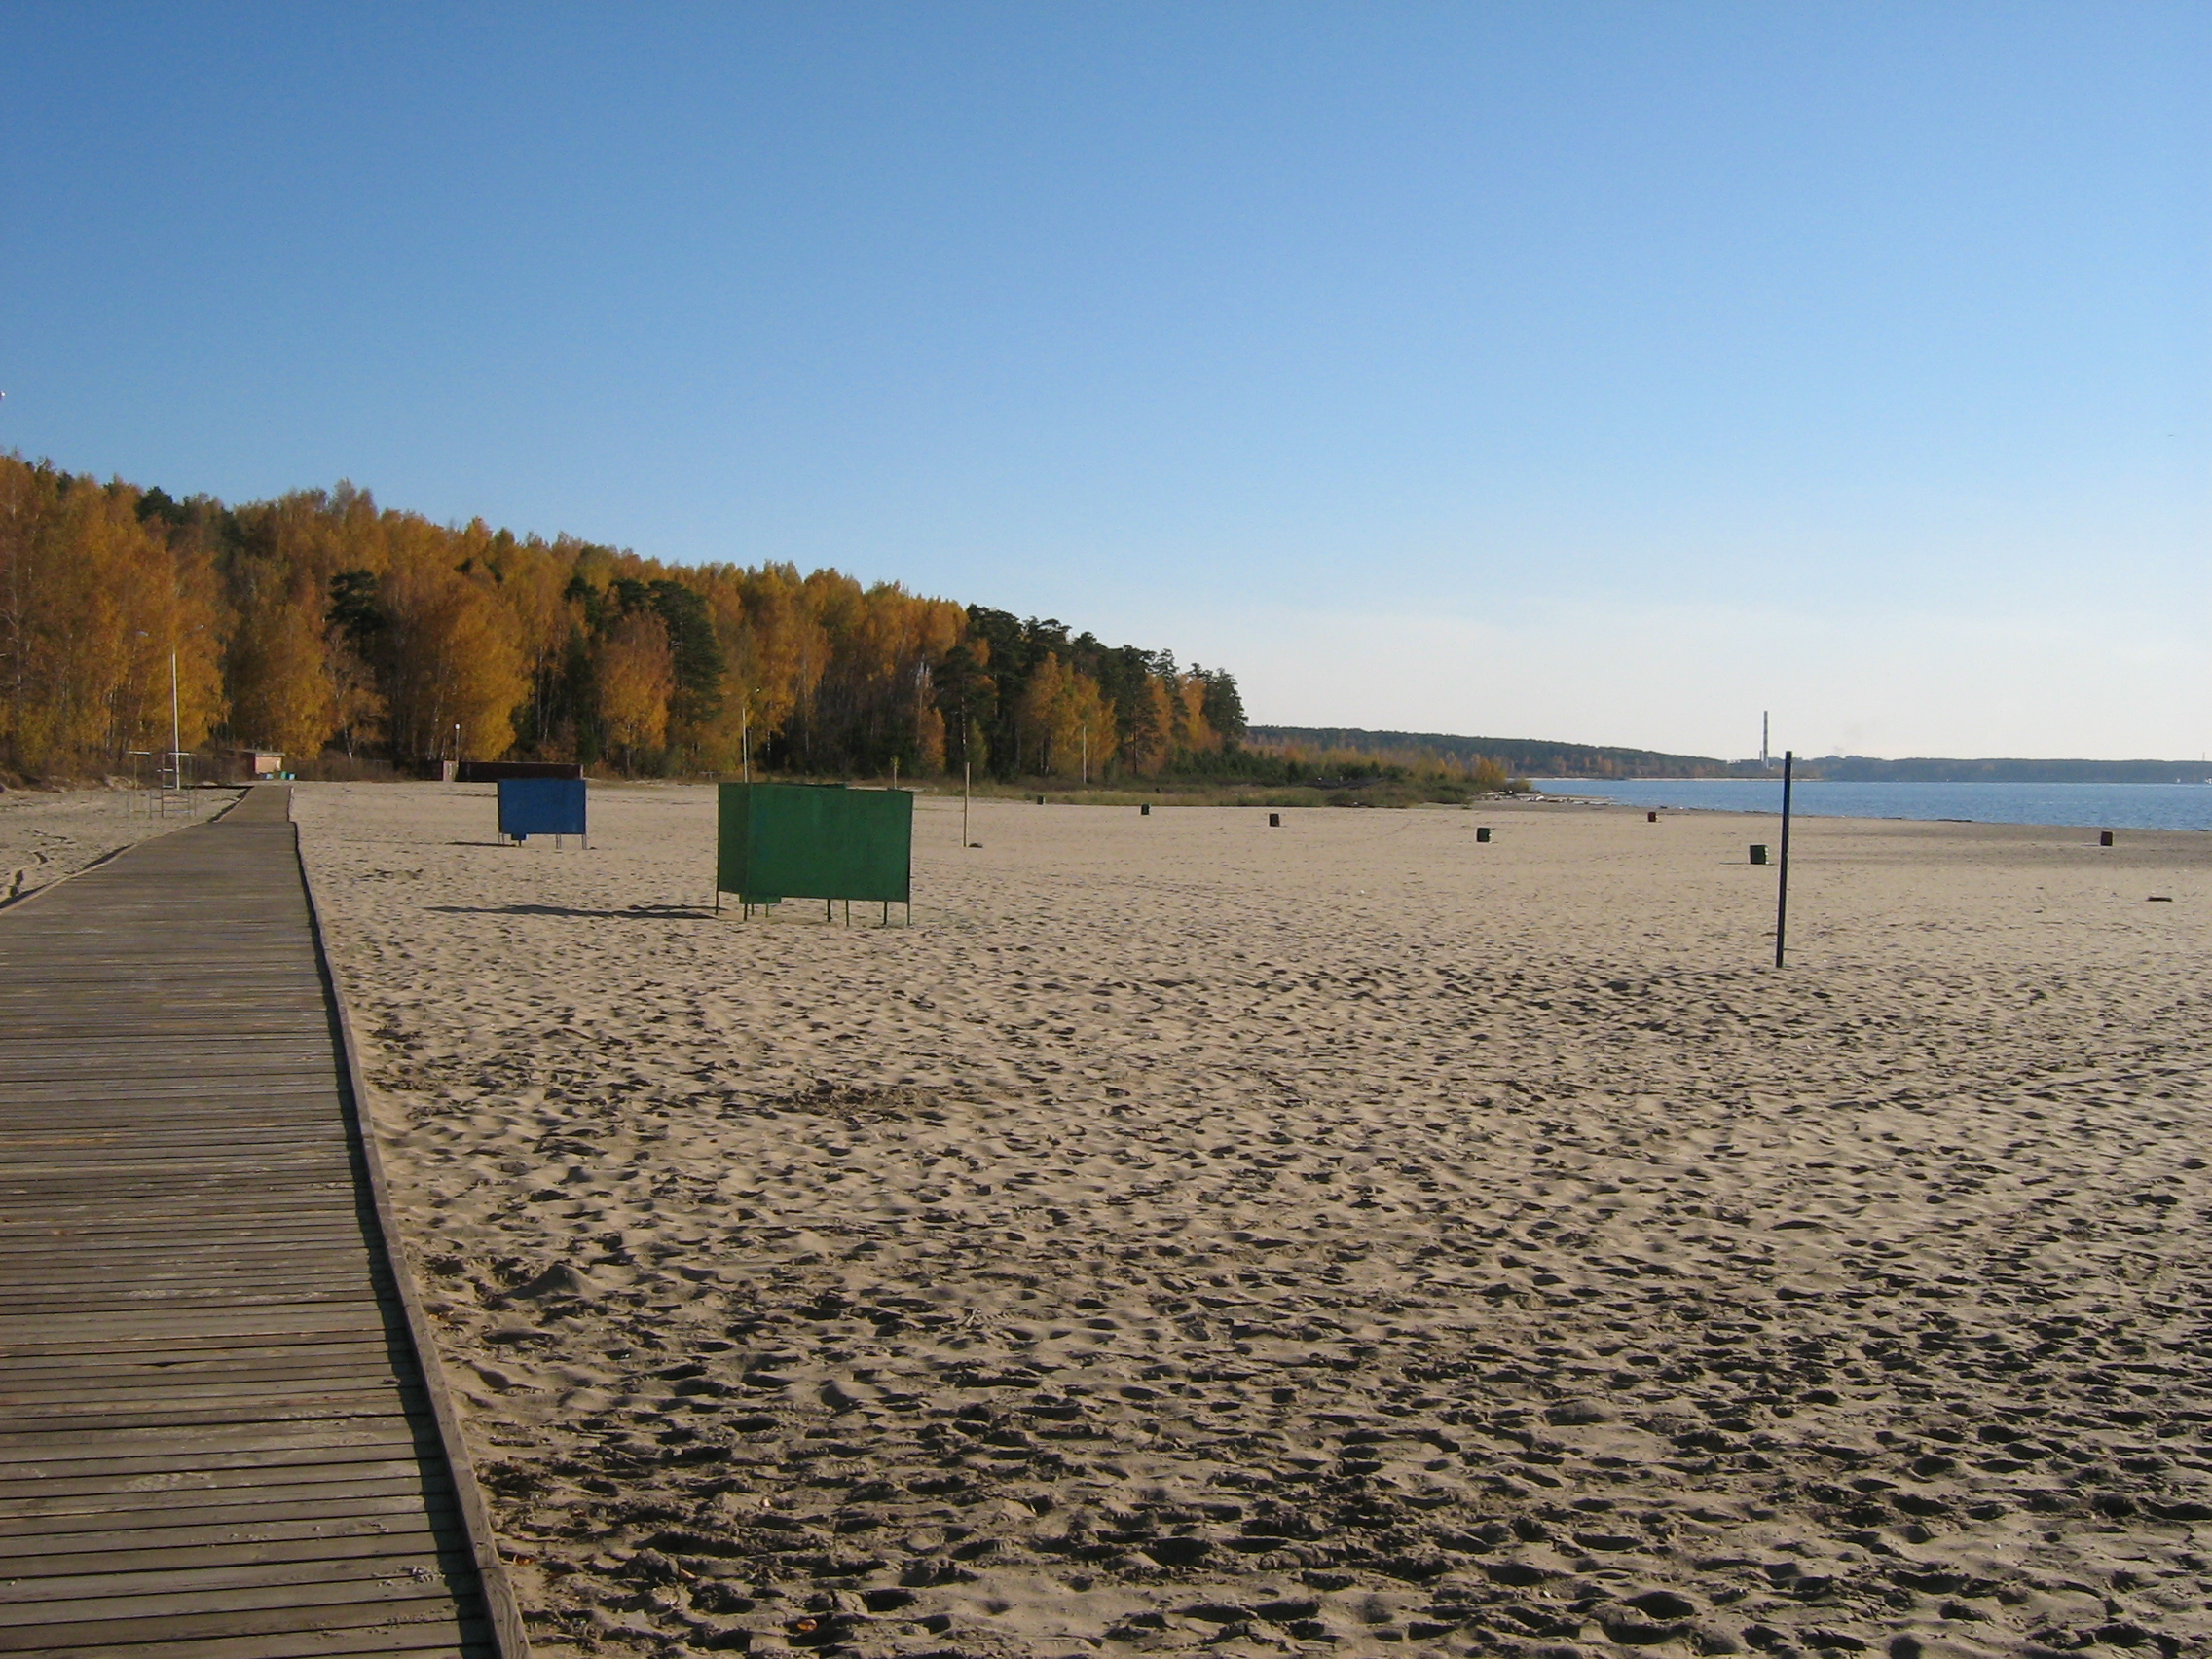 Autumn in Akademgorodok. On the beach